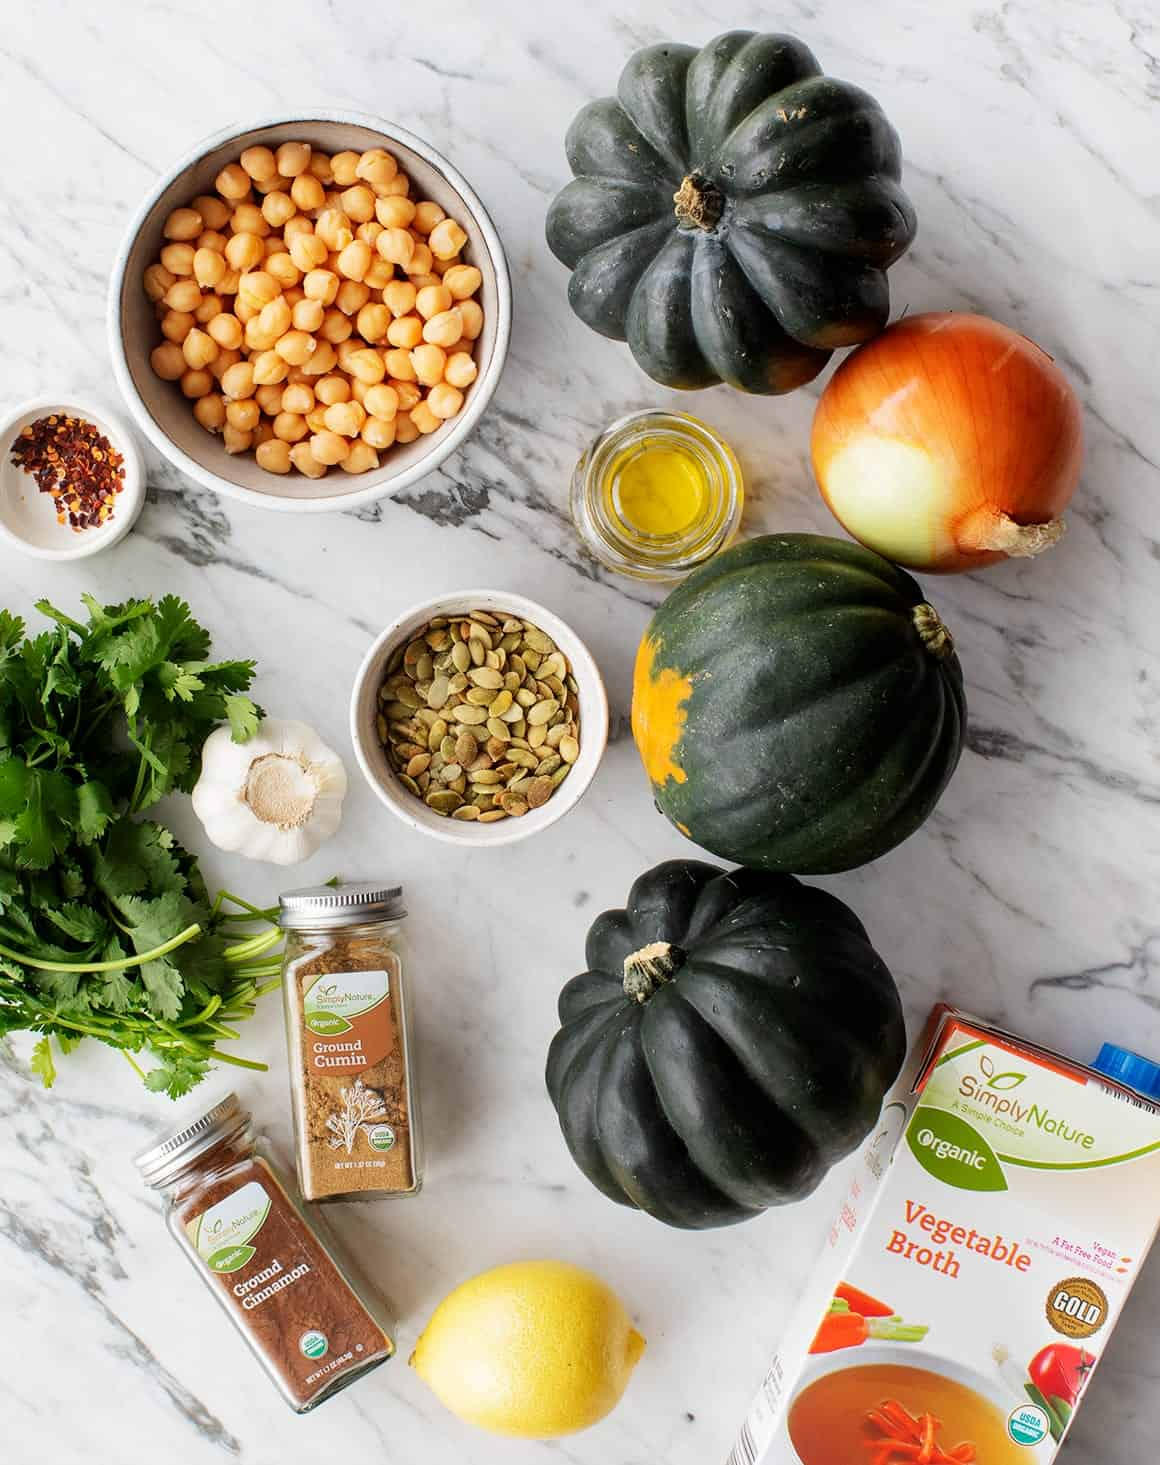 Acorn Squash with Chickpeas & Chimichurri ingredients